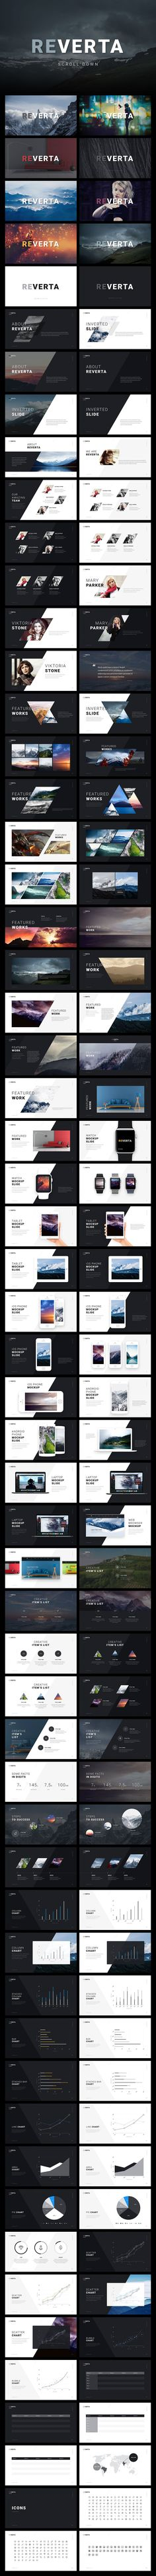 Reverta PowerPoint Template by ReworkMedia on Map Design, Deck Design, Google Material, Creative Powerpoint Presentations, Agriculture Logo, Text Style, Keynote Template, Presentation Templates, Infographics Design